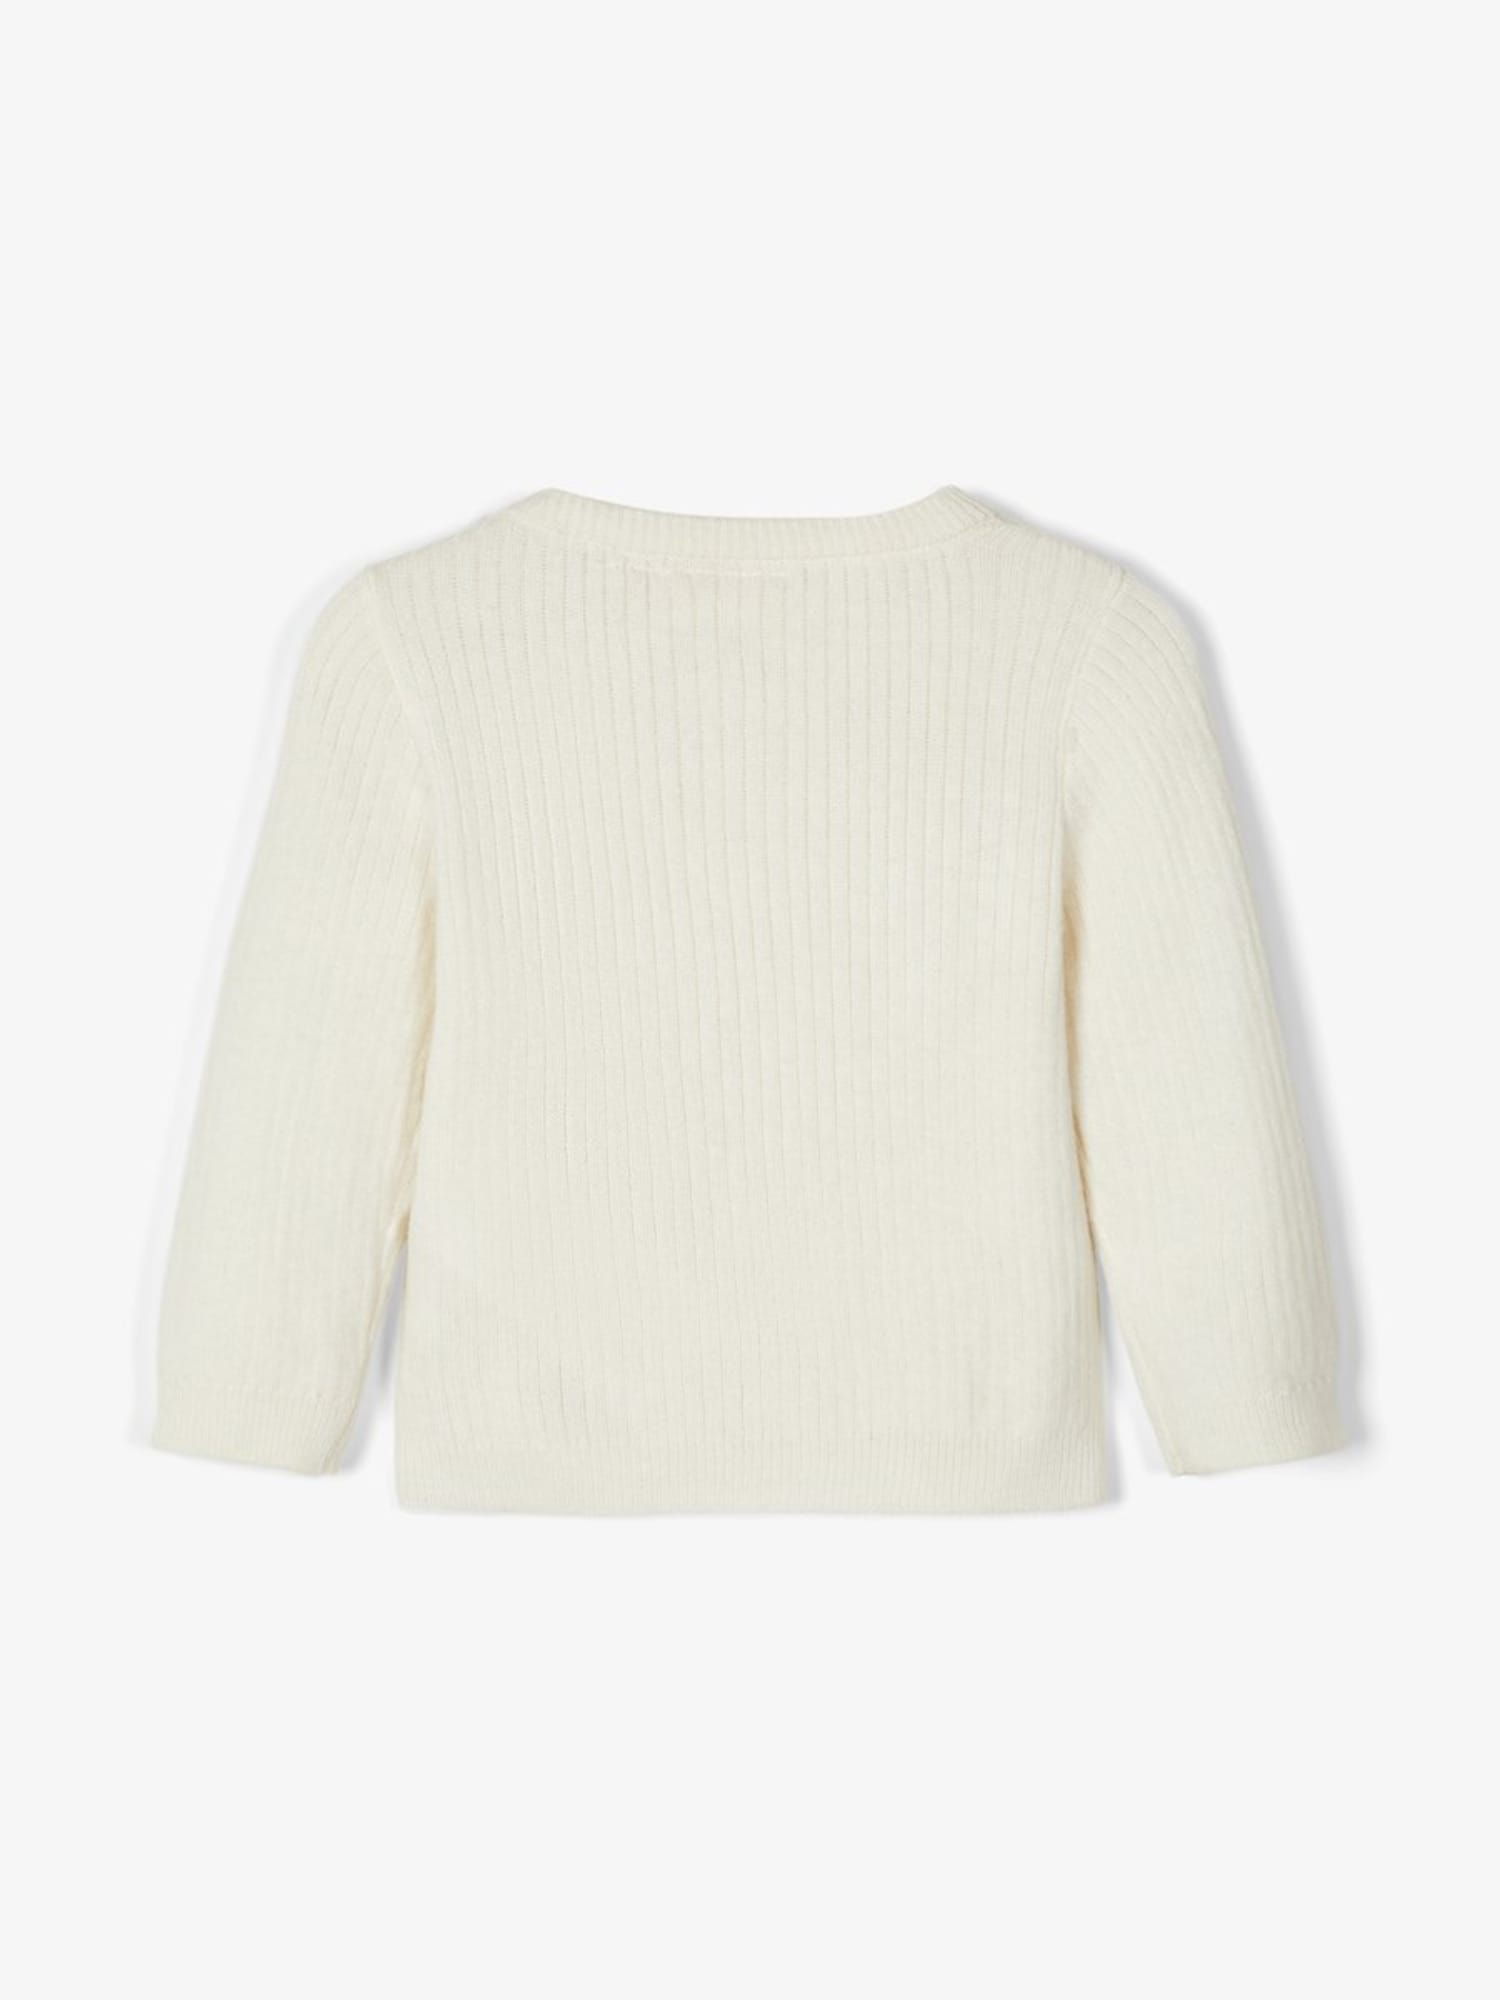 Babyoberteile - Rippstrick Woll Pullover - Onlineshop ABOUT YOU